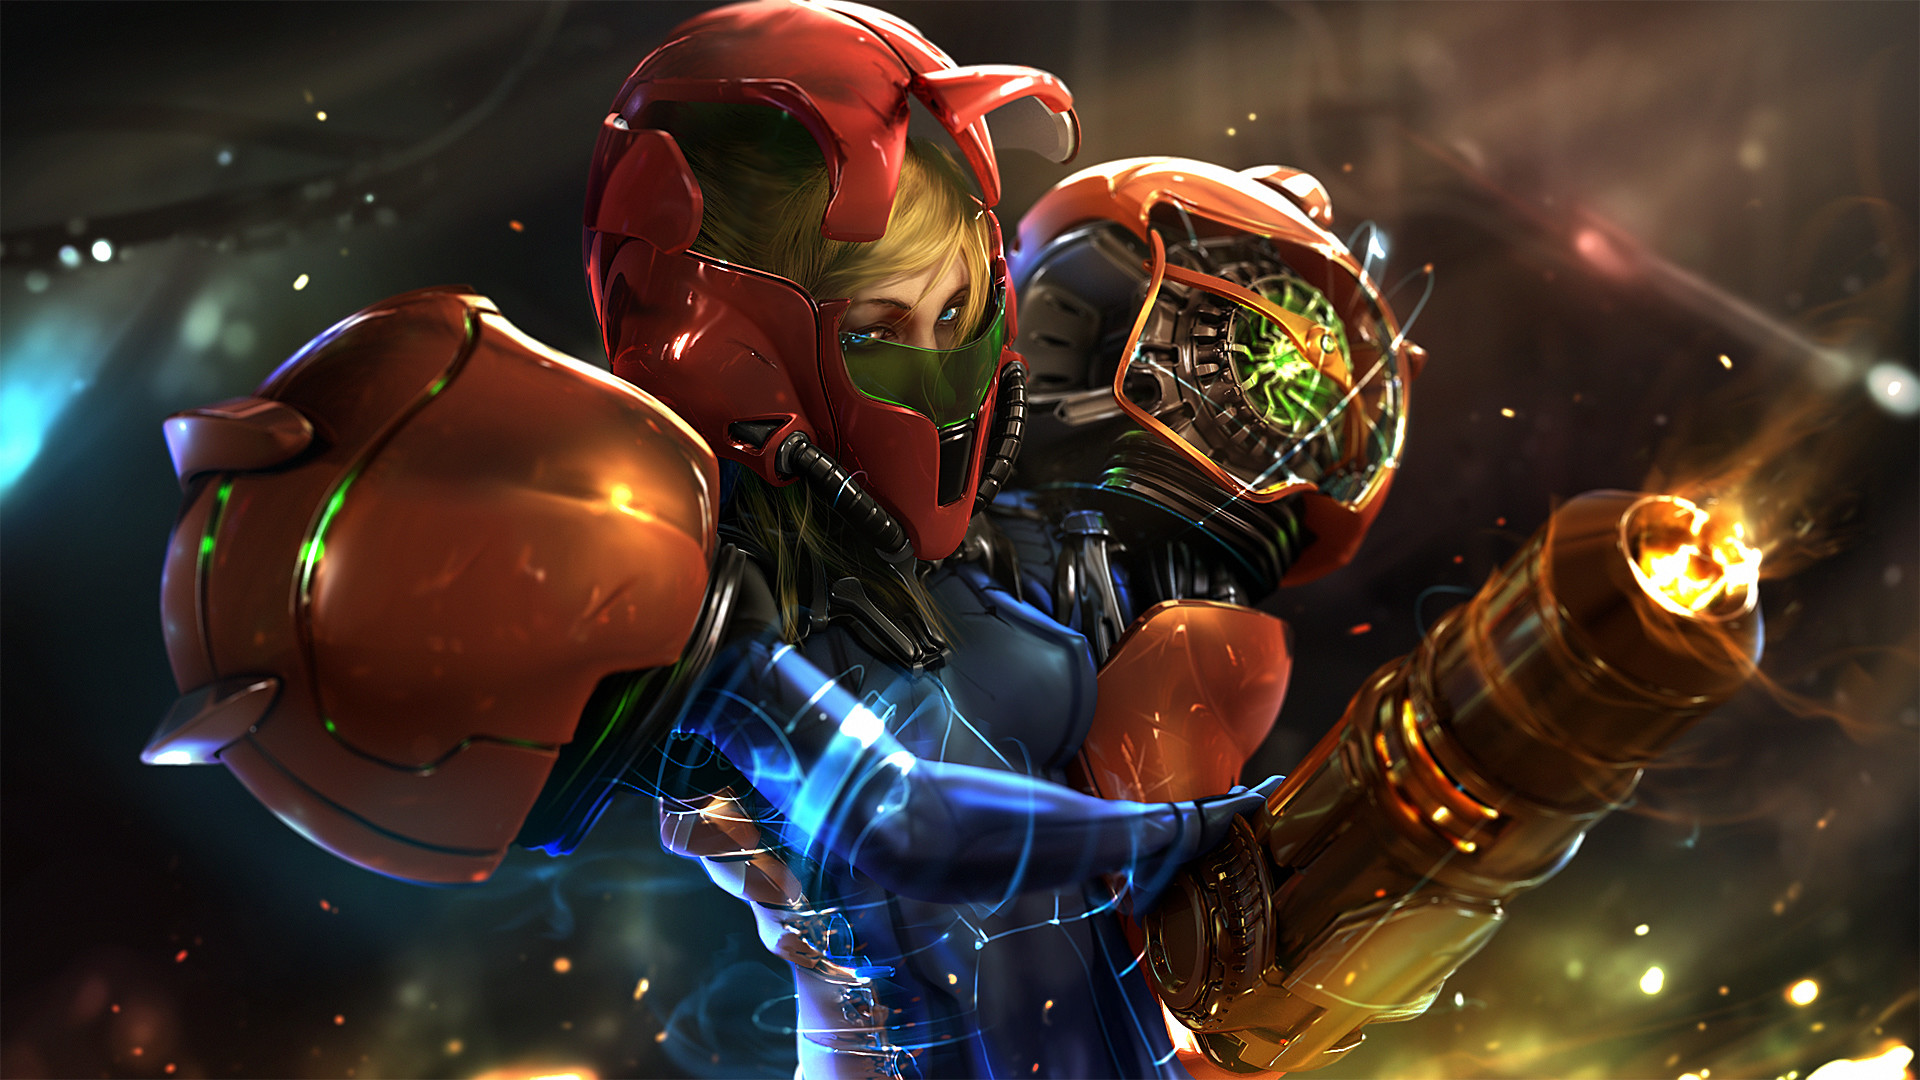 1920x1080 Awesome Metroid Wallpaper For The 21st Anniversary Of Super